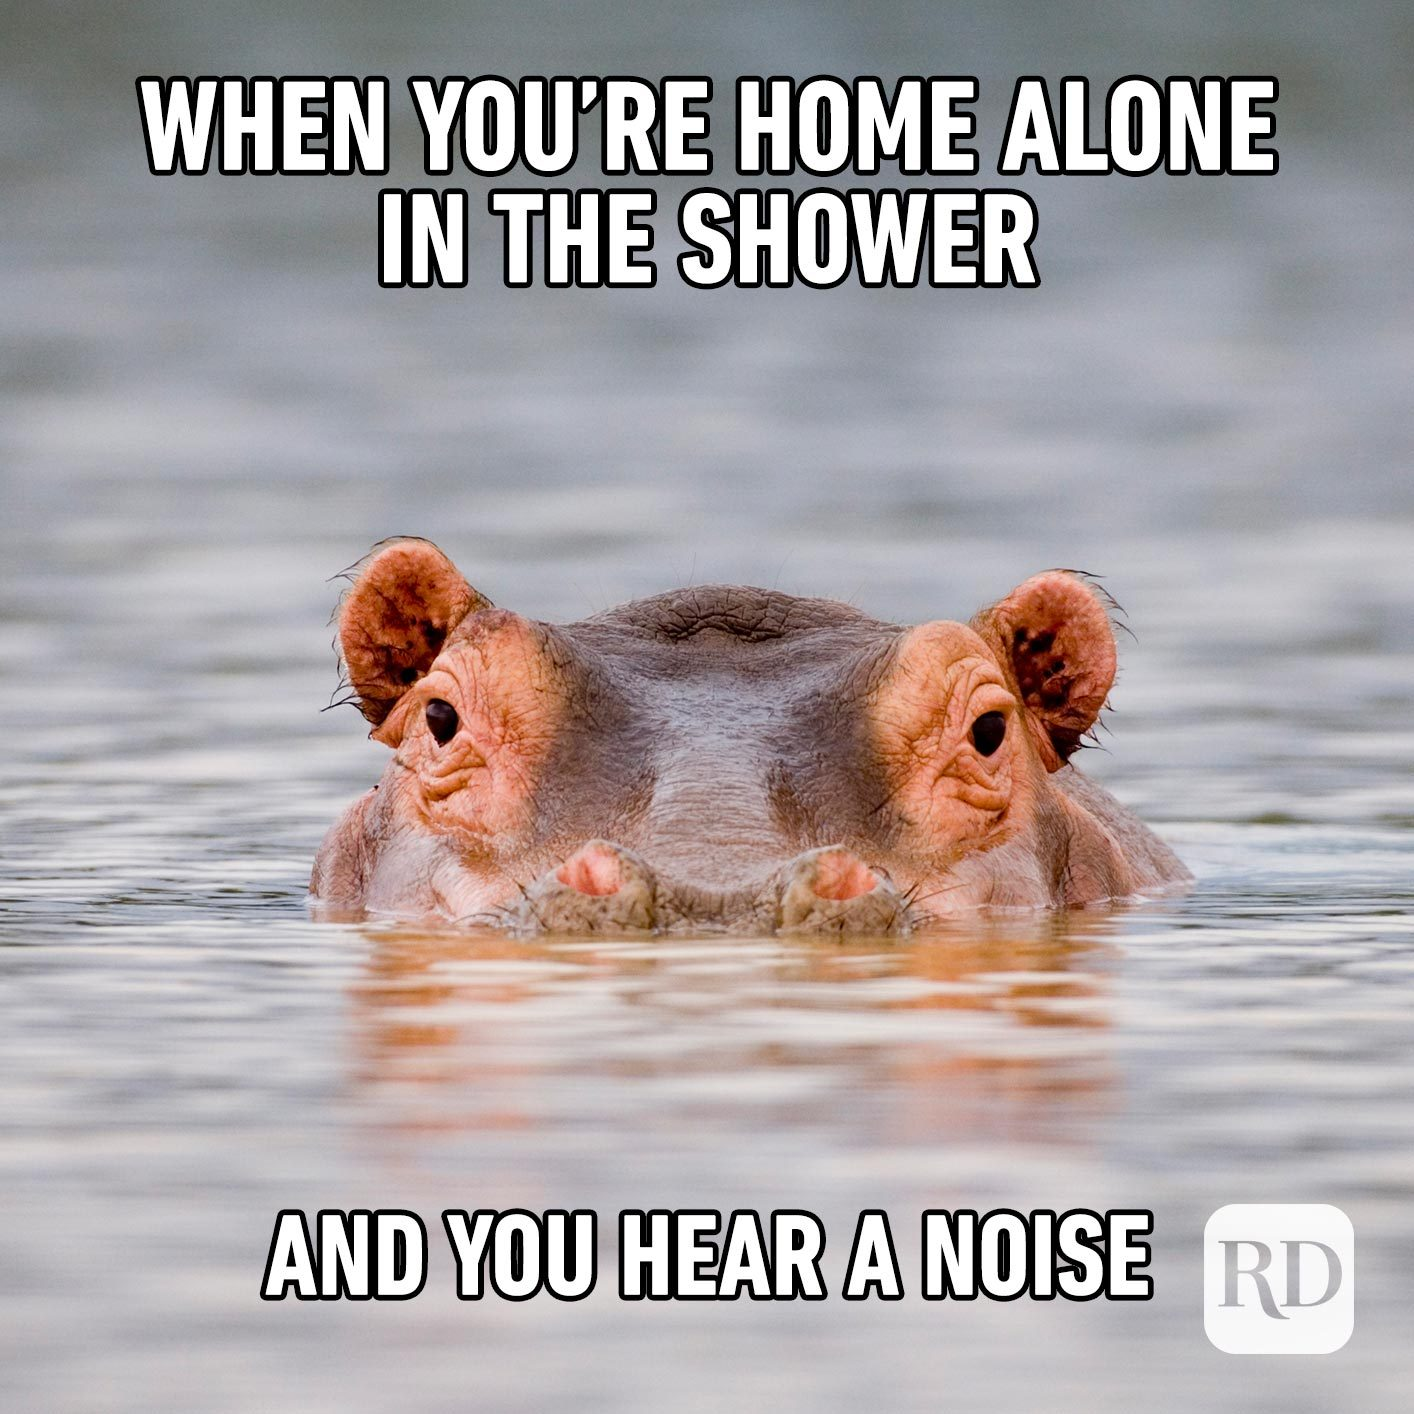 Hippo rising out of water. Meme text: When you're home alone in the shower and you hear a noise